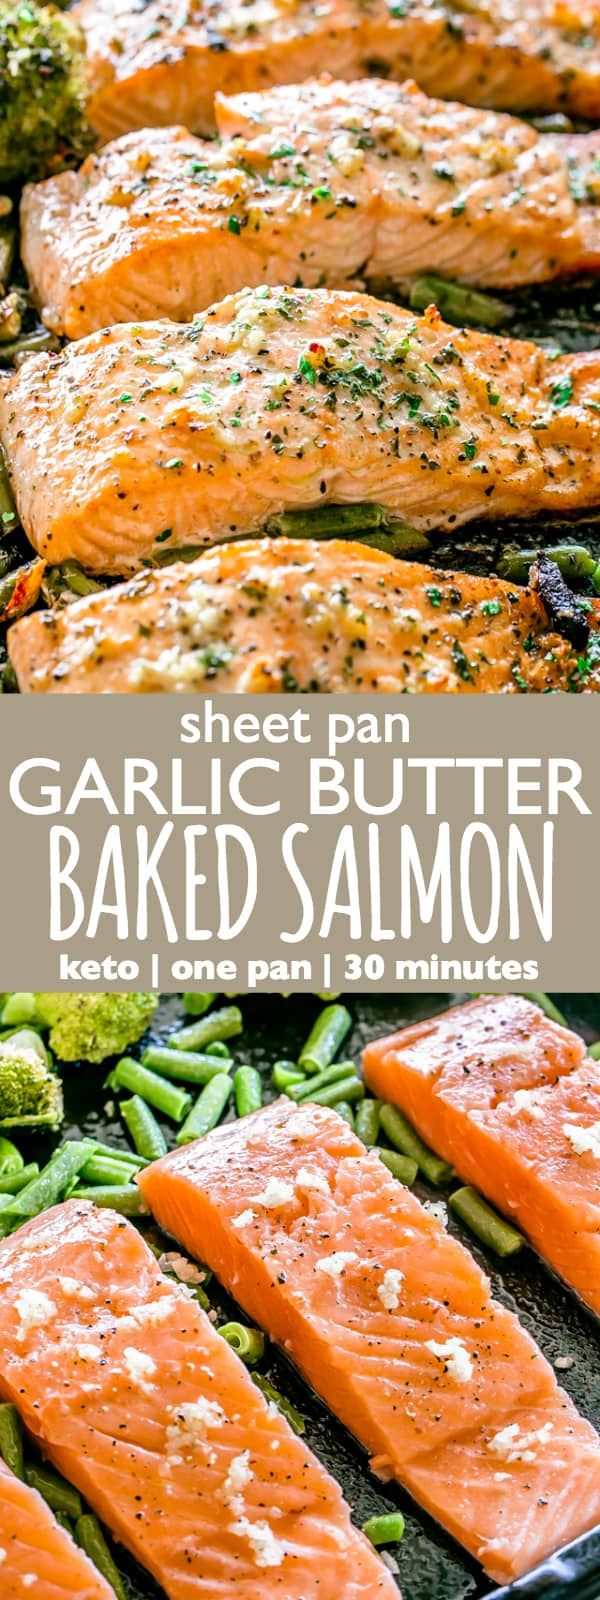 Garlic Butter Baked Salmon - Tender and juicy salmon brushed with an incredible garlic butter sauce